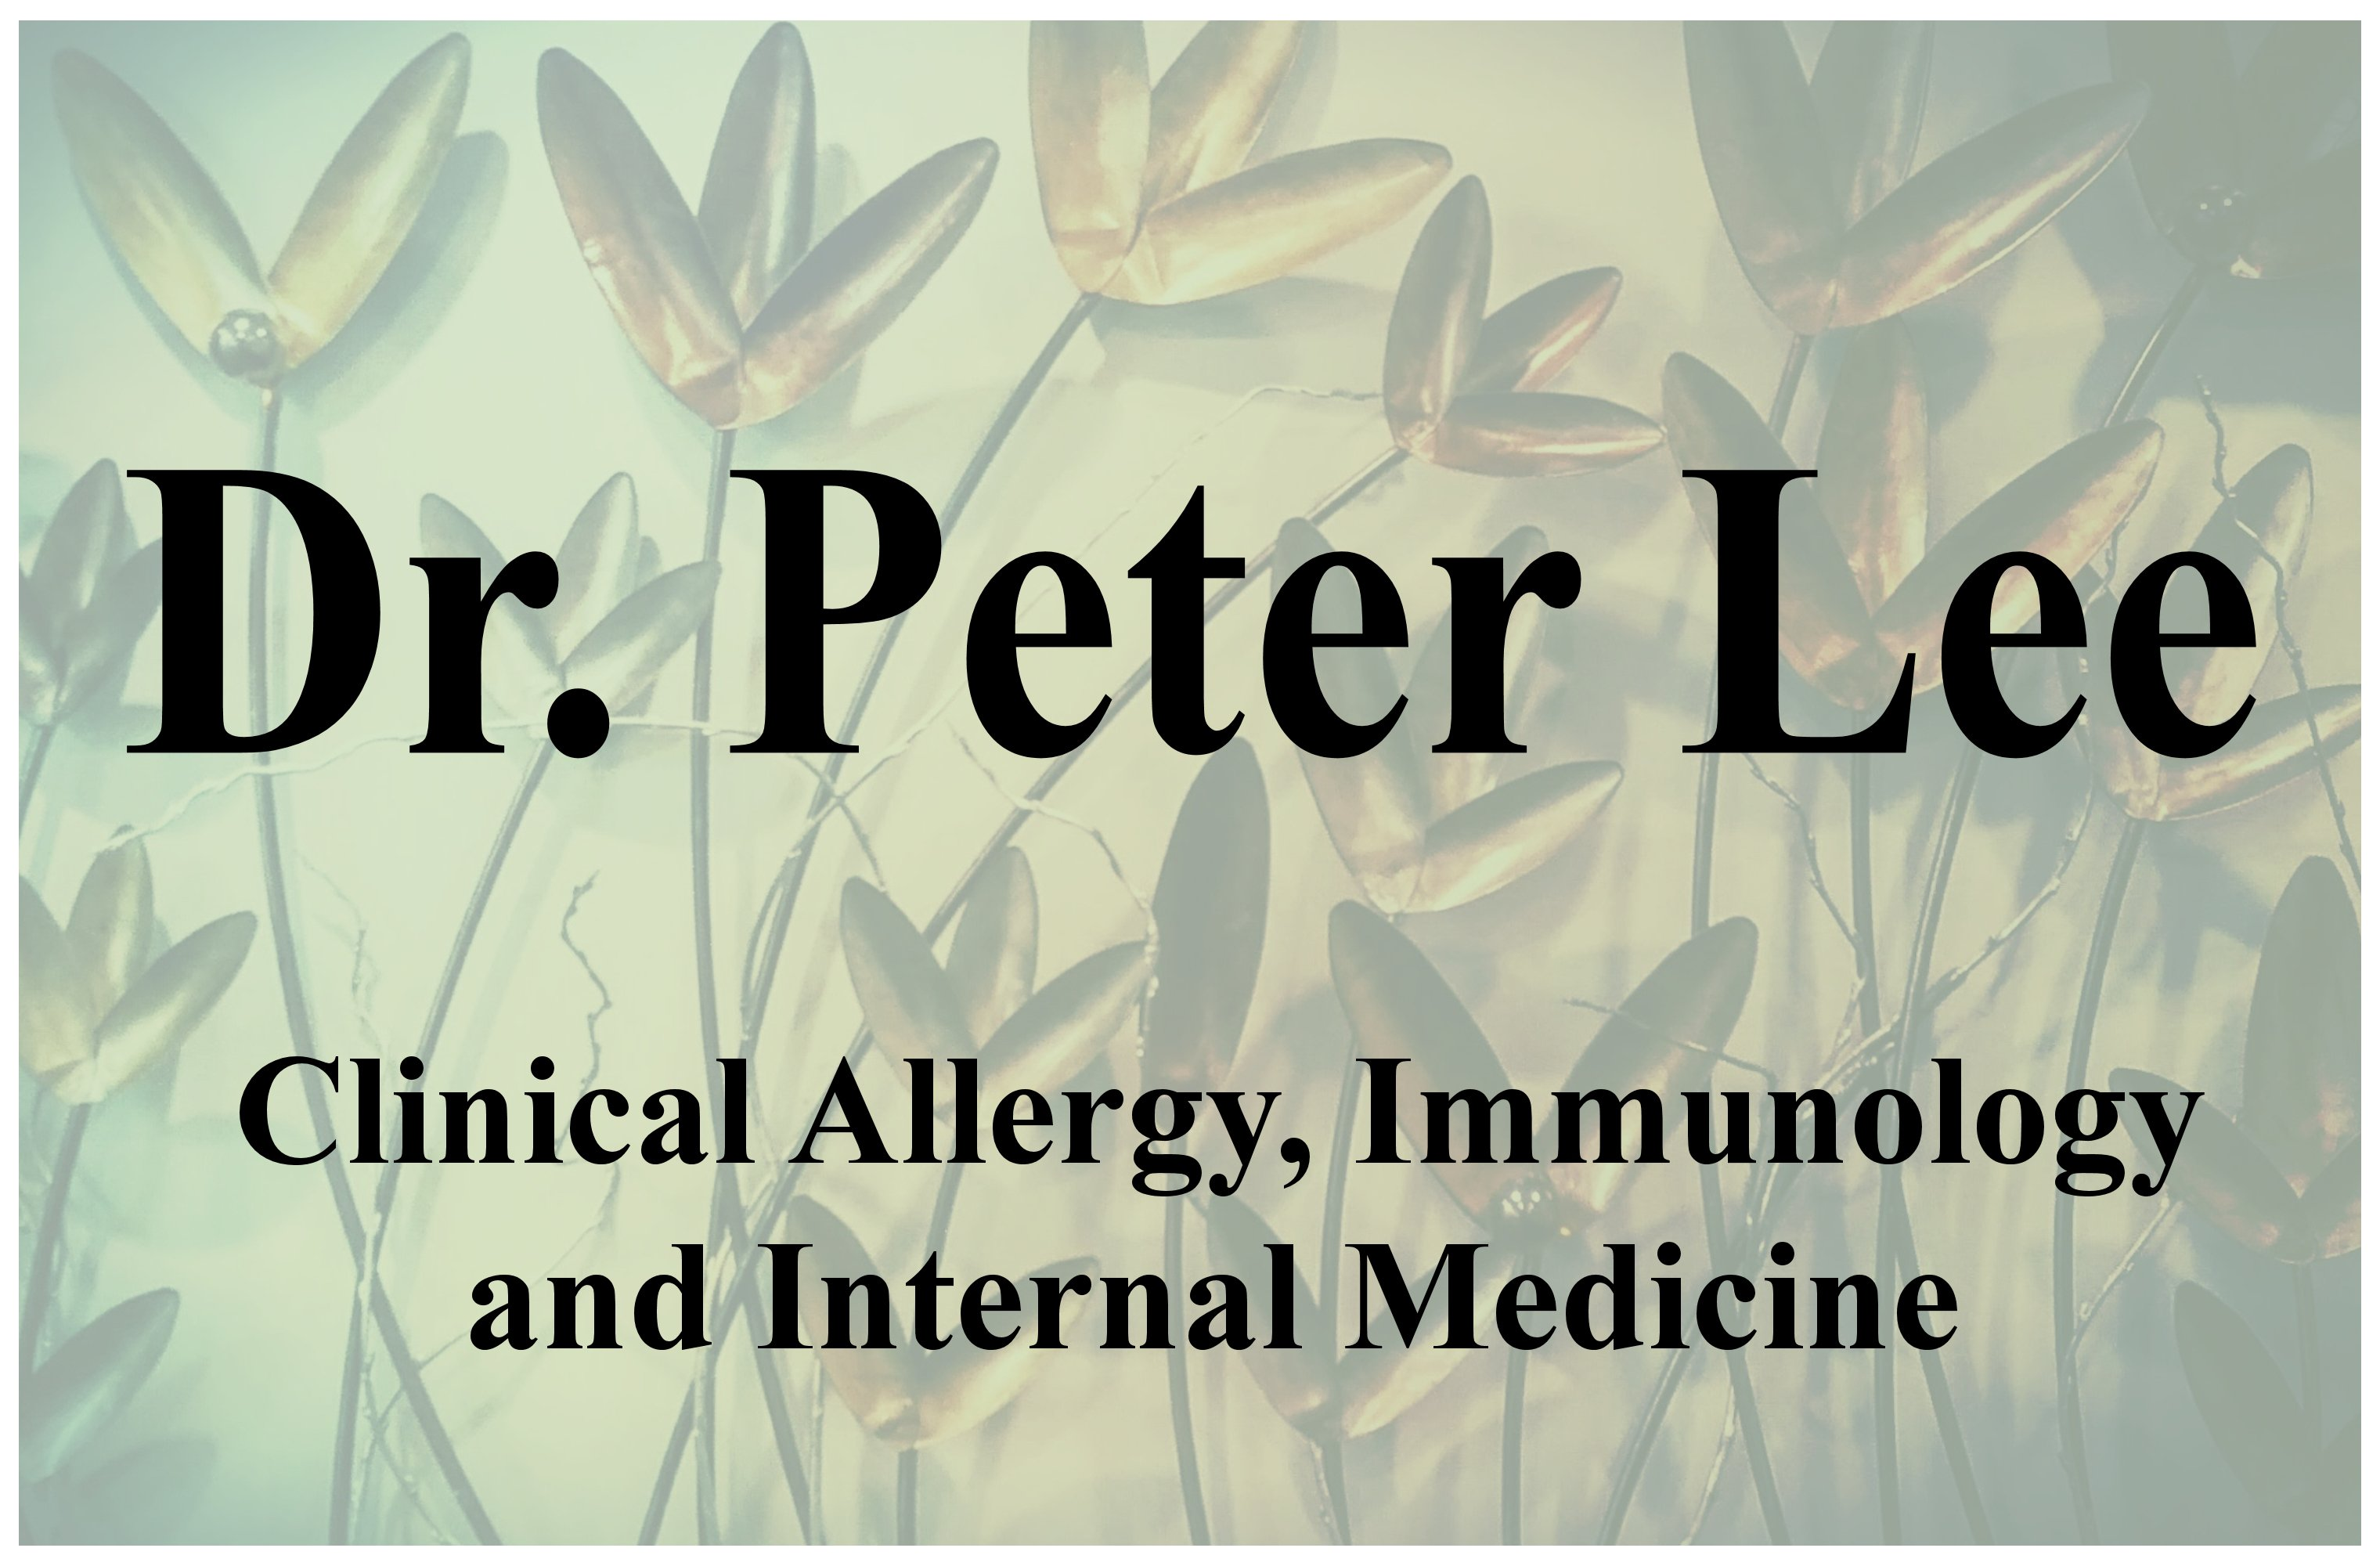 Dr. Peter Lee